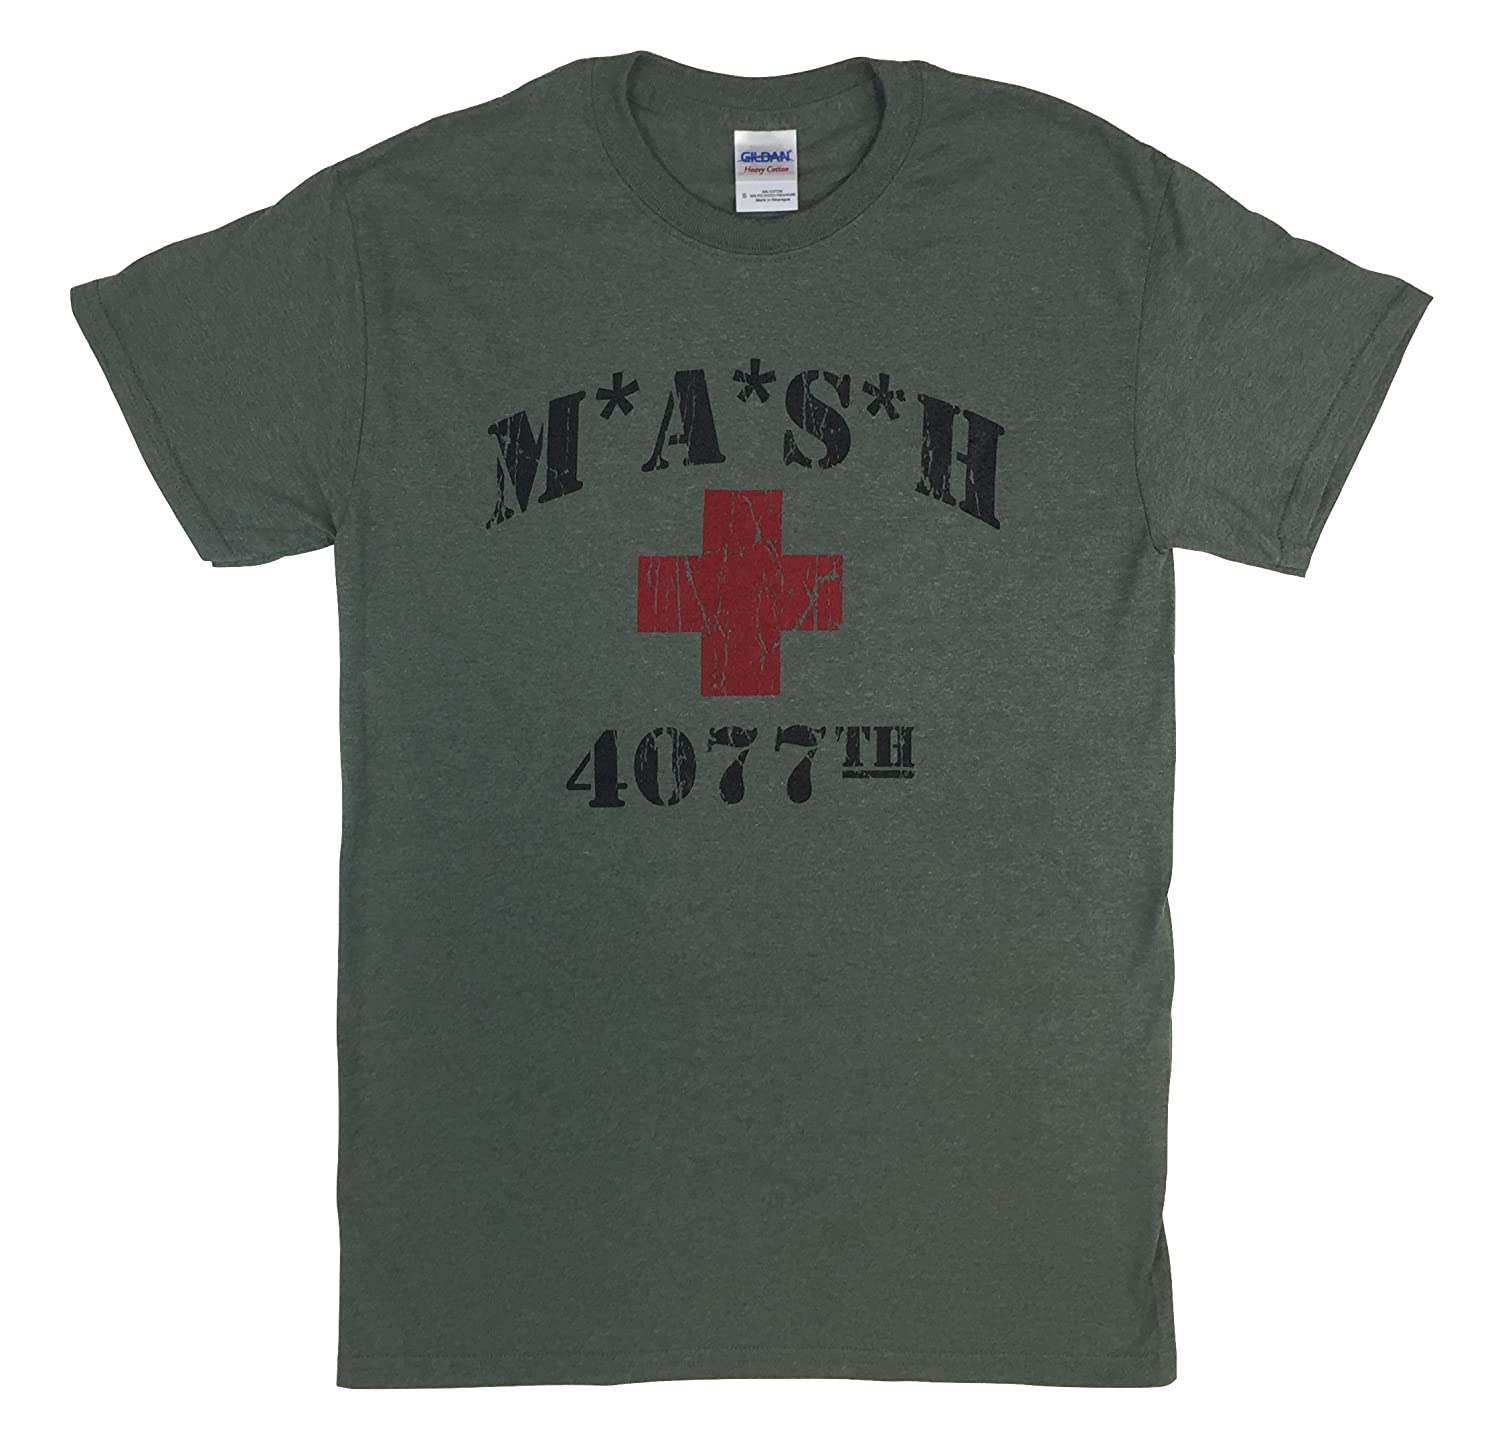 MASH 4077th Heather Military Green T Shirt Red Cross MASH